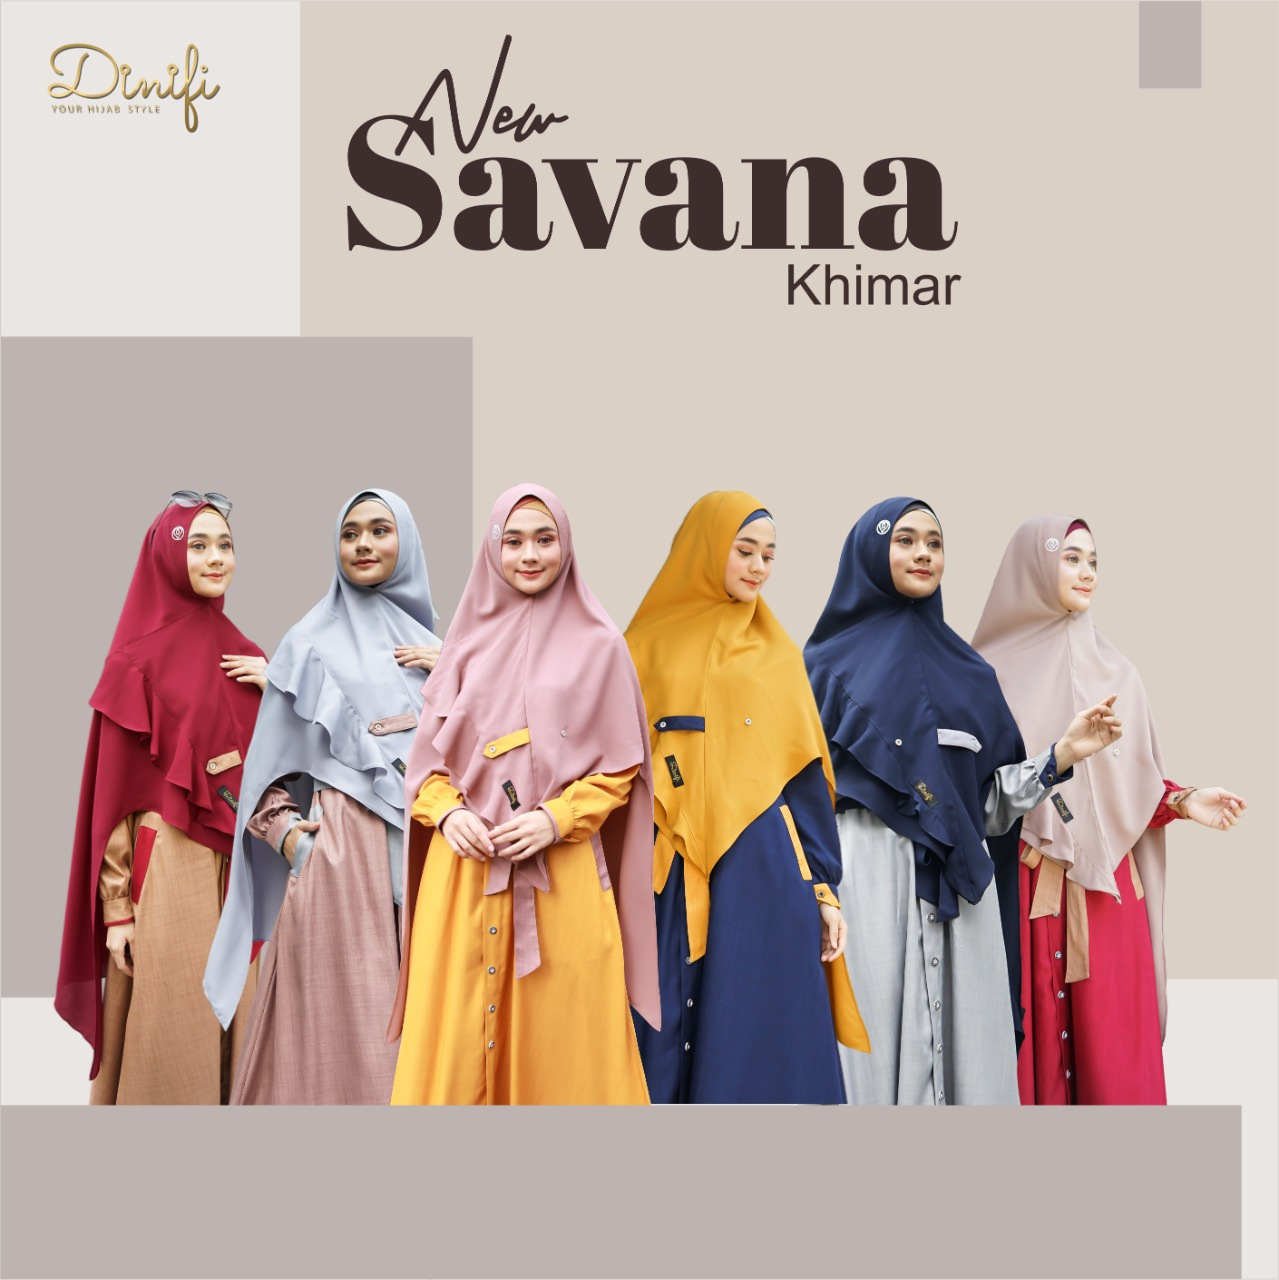 Khimar New Savana